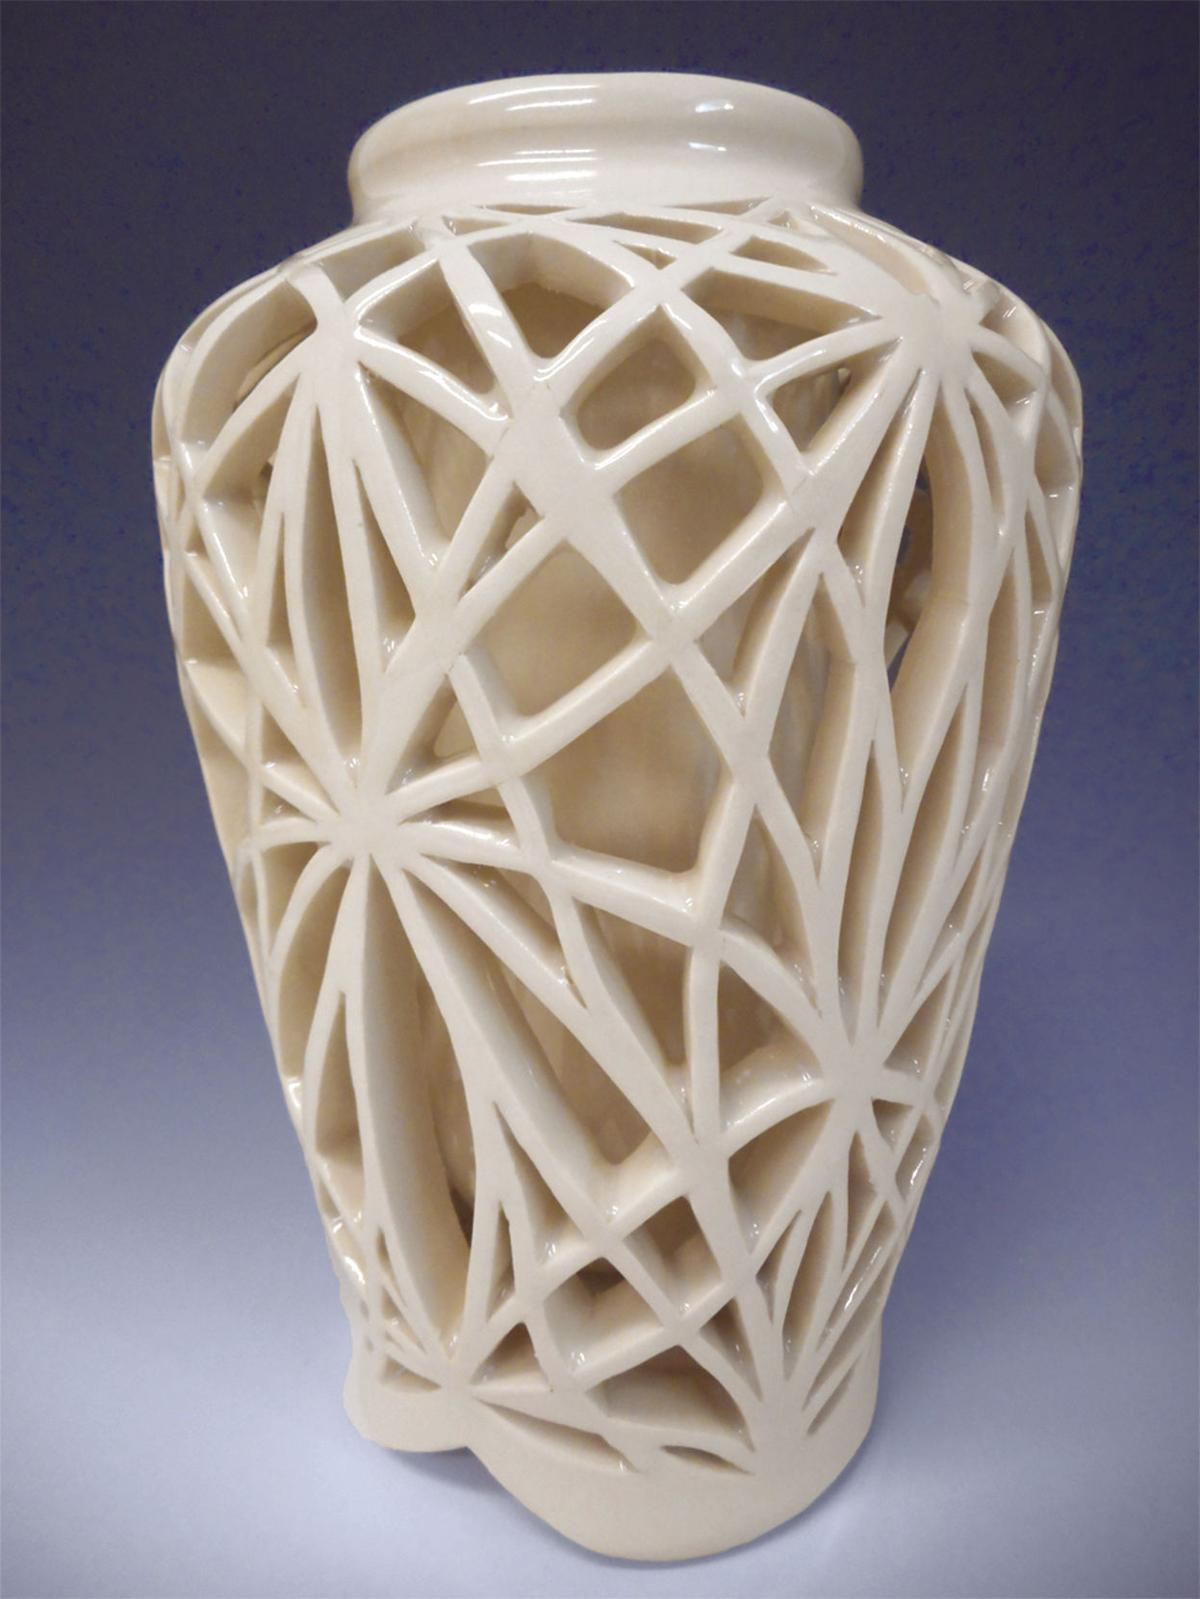 Vase by Erin Carpenter